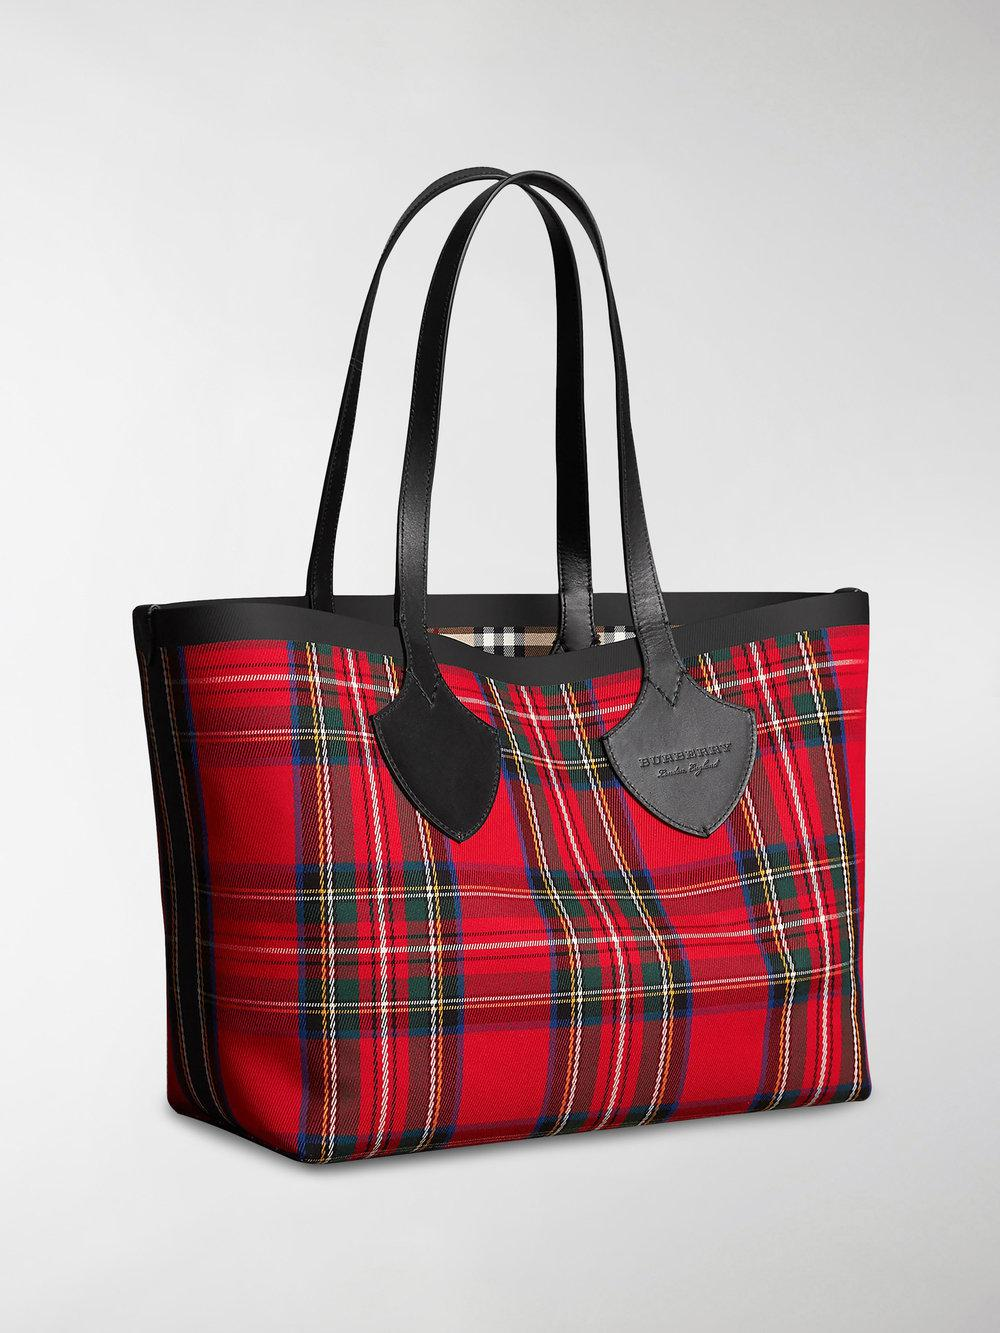 Burberry - Red Reversible Vintage Check Tote Bag - Lyst. View fullscreen 685d81d26c